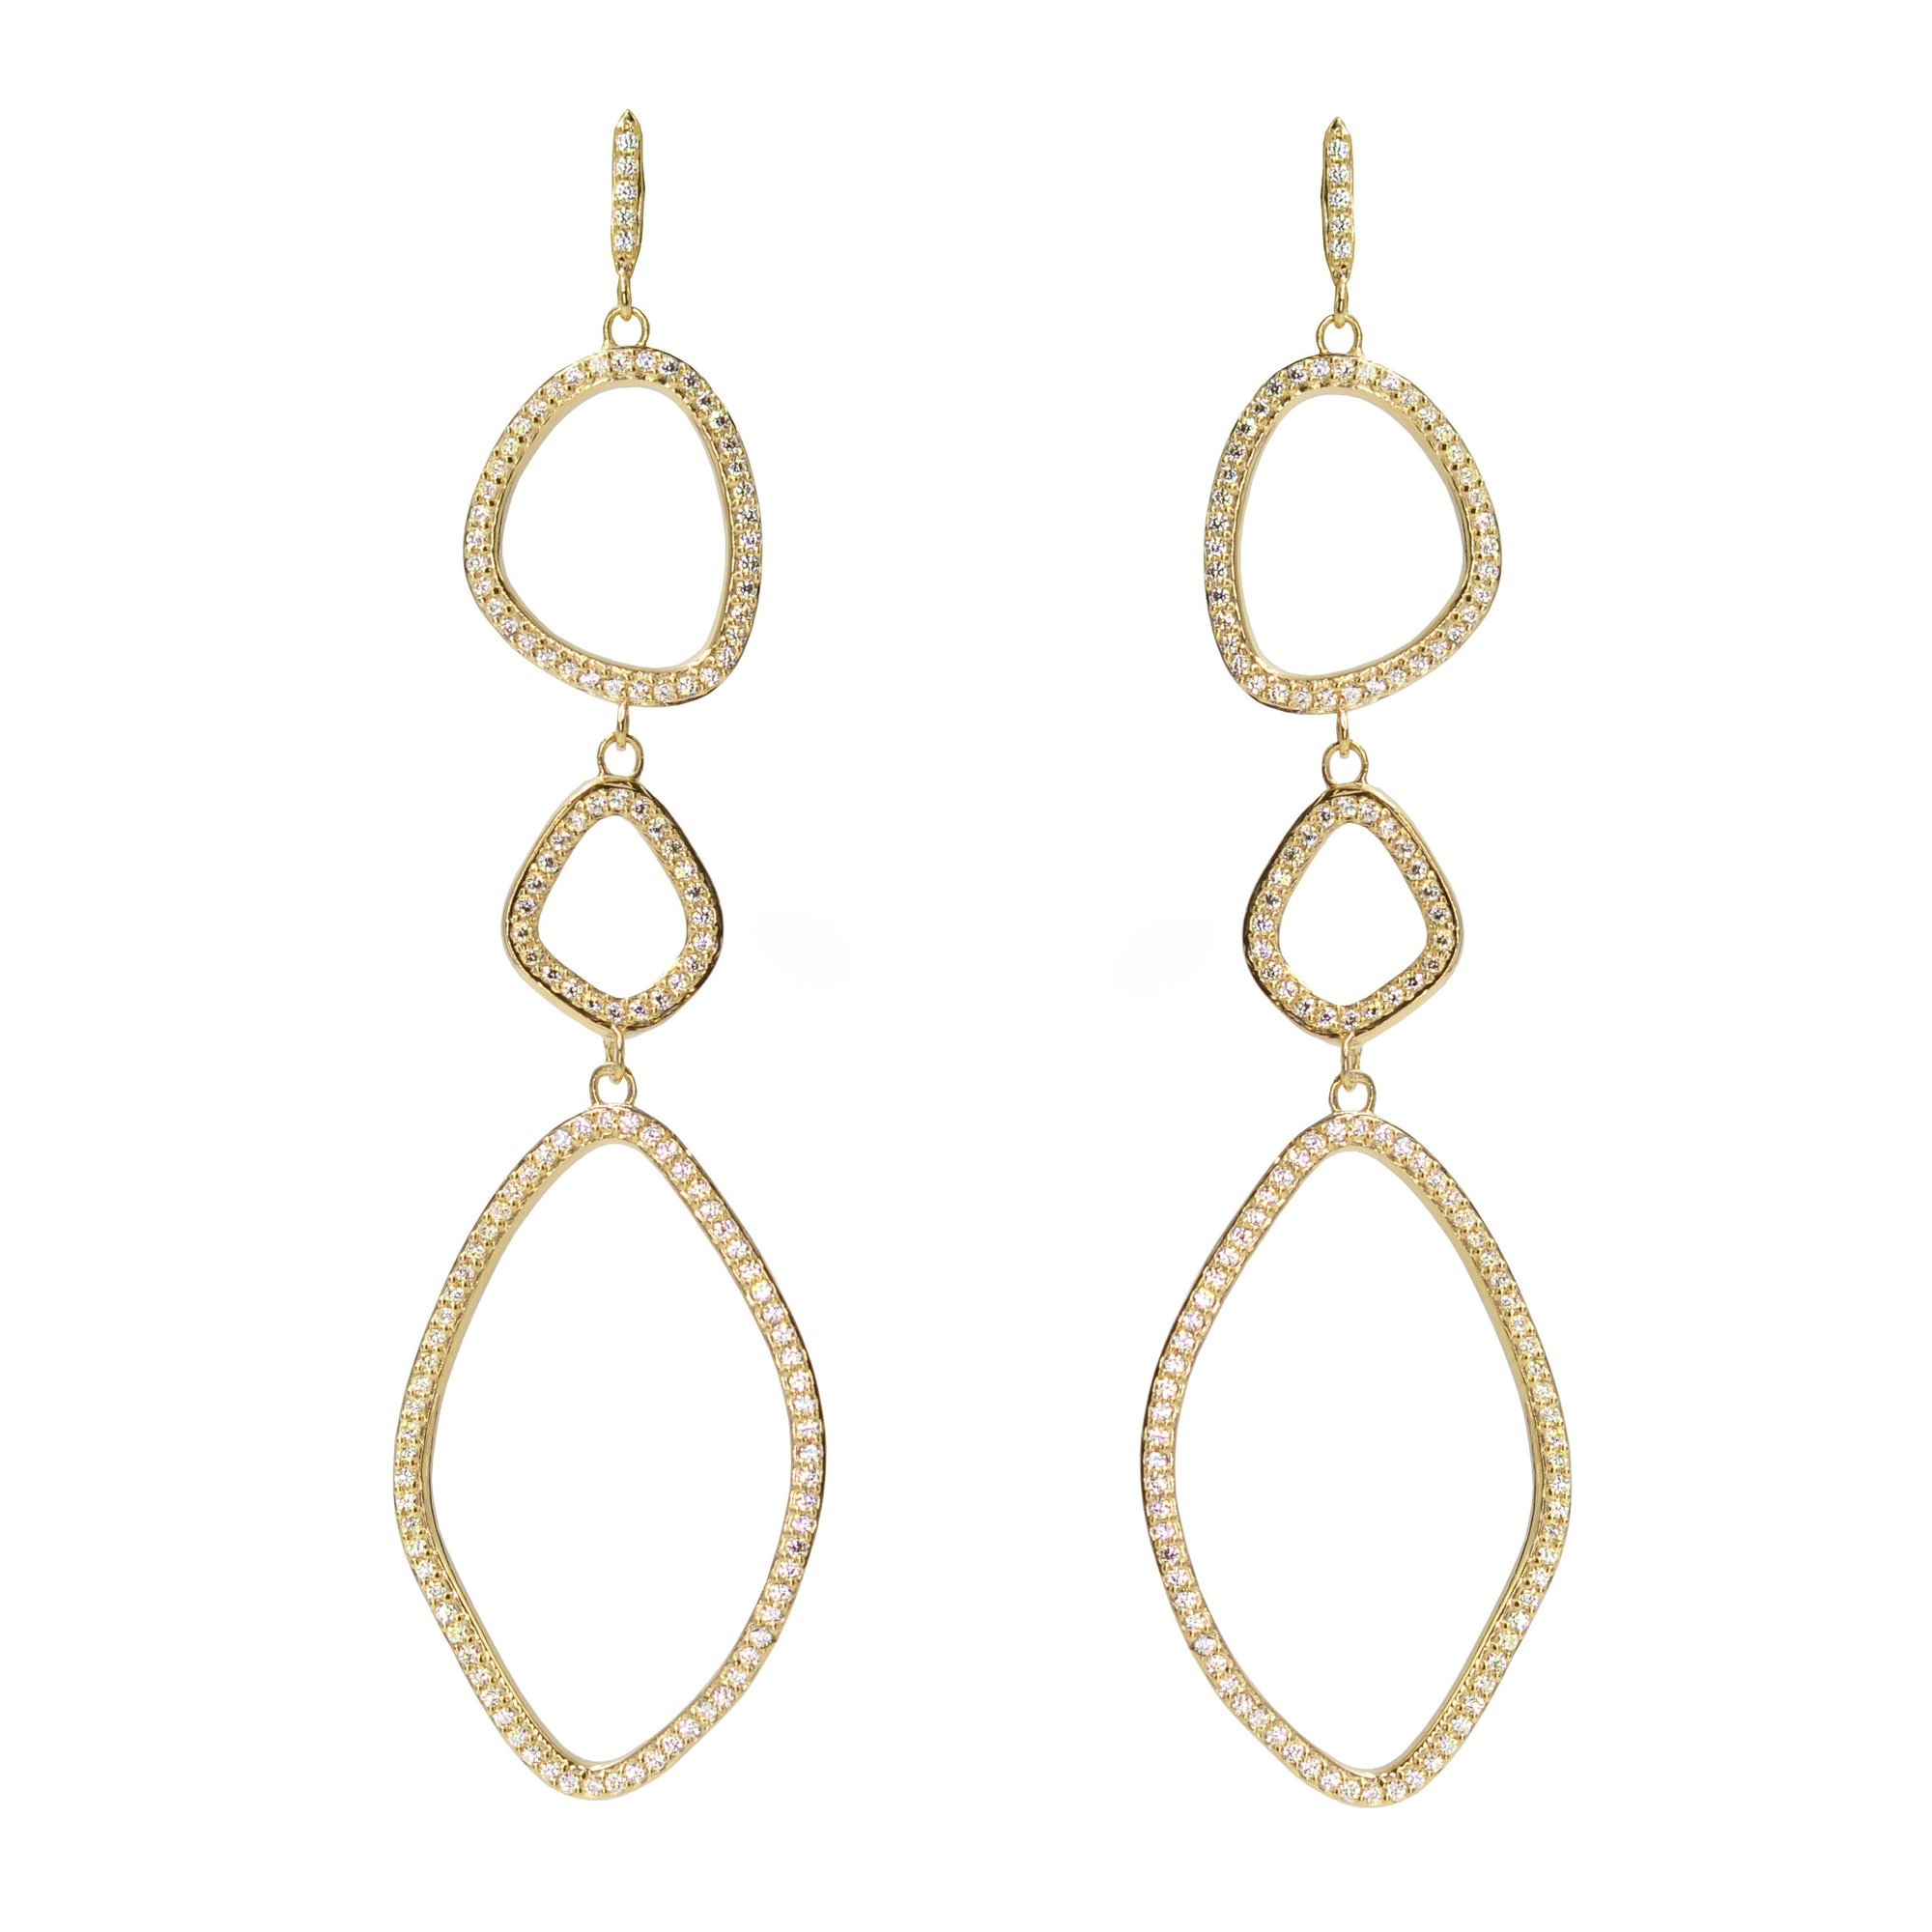 Triple organic shape dangle earrings in yellow gold